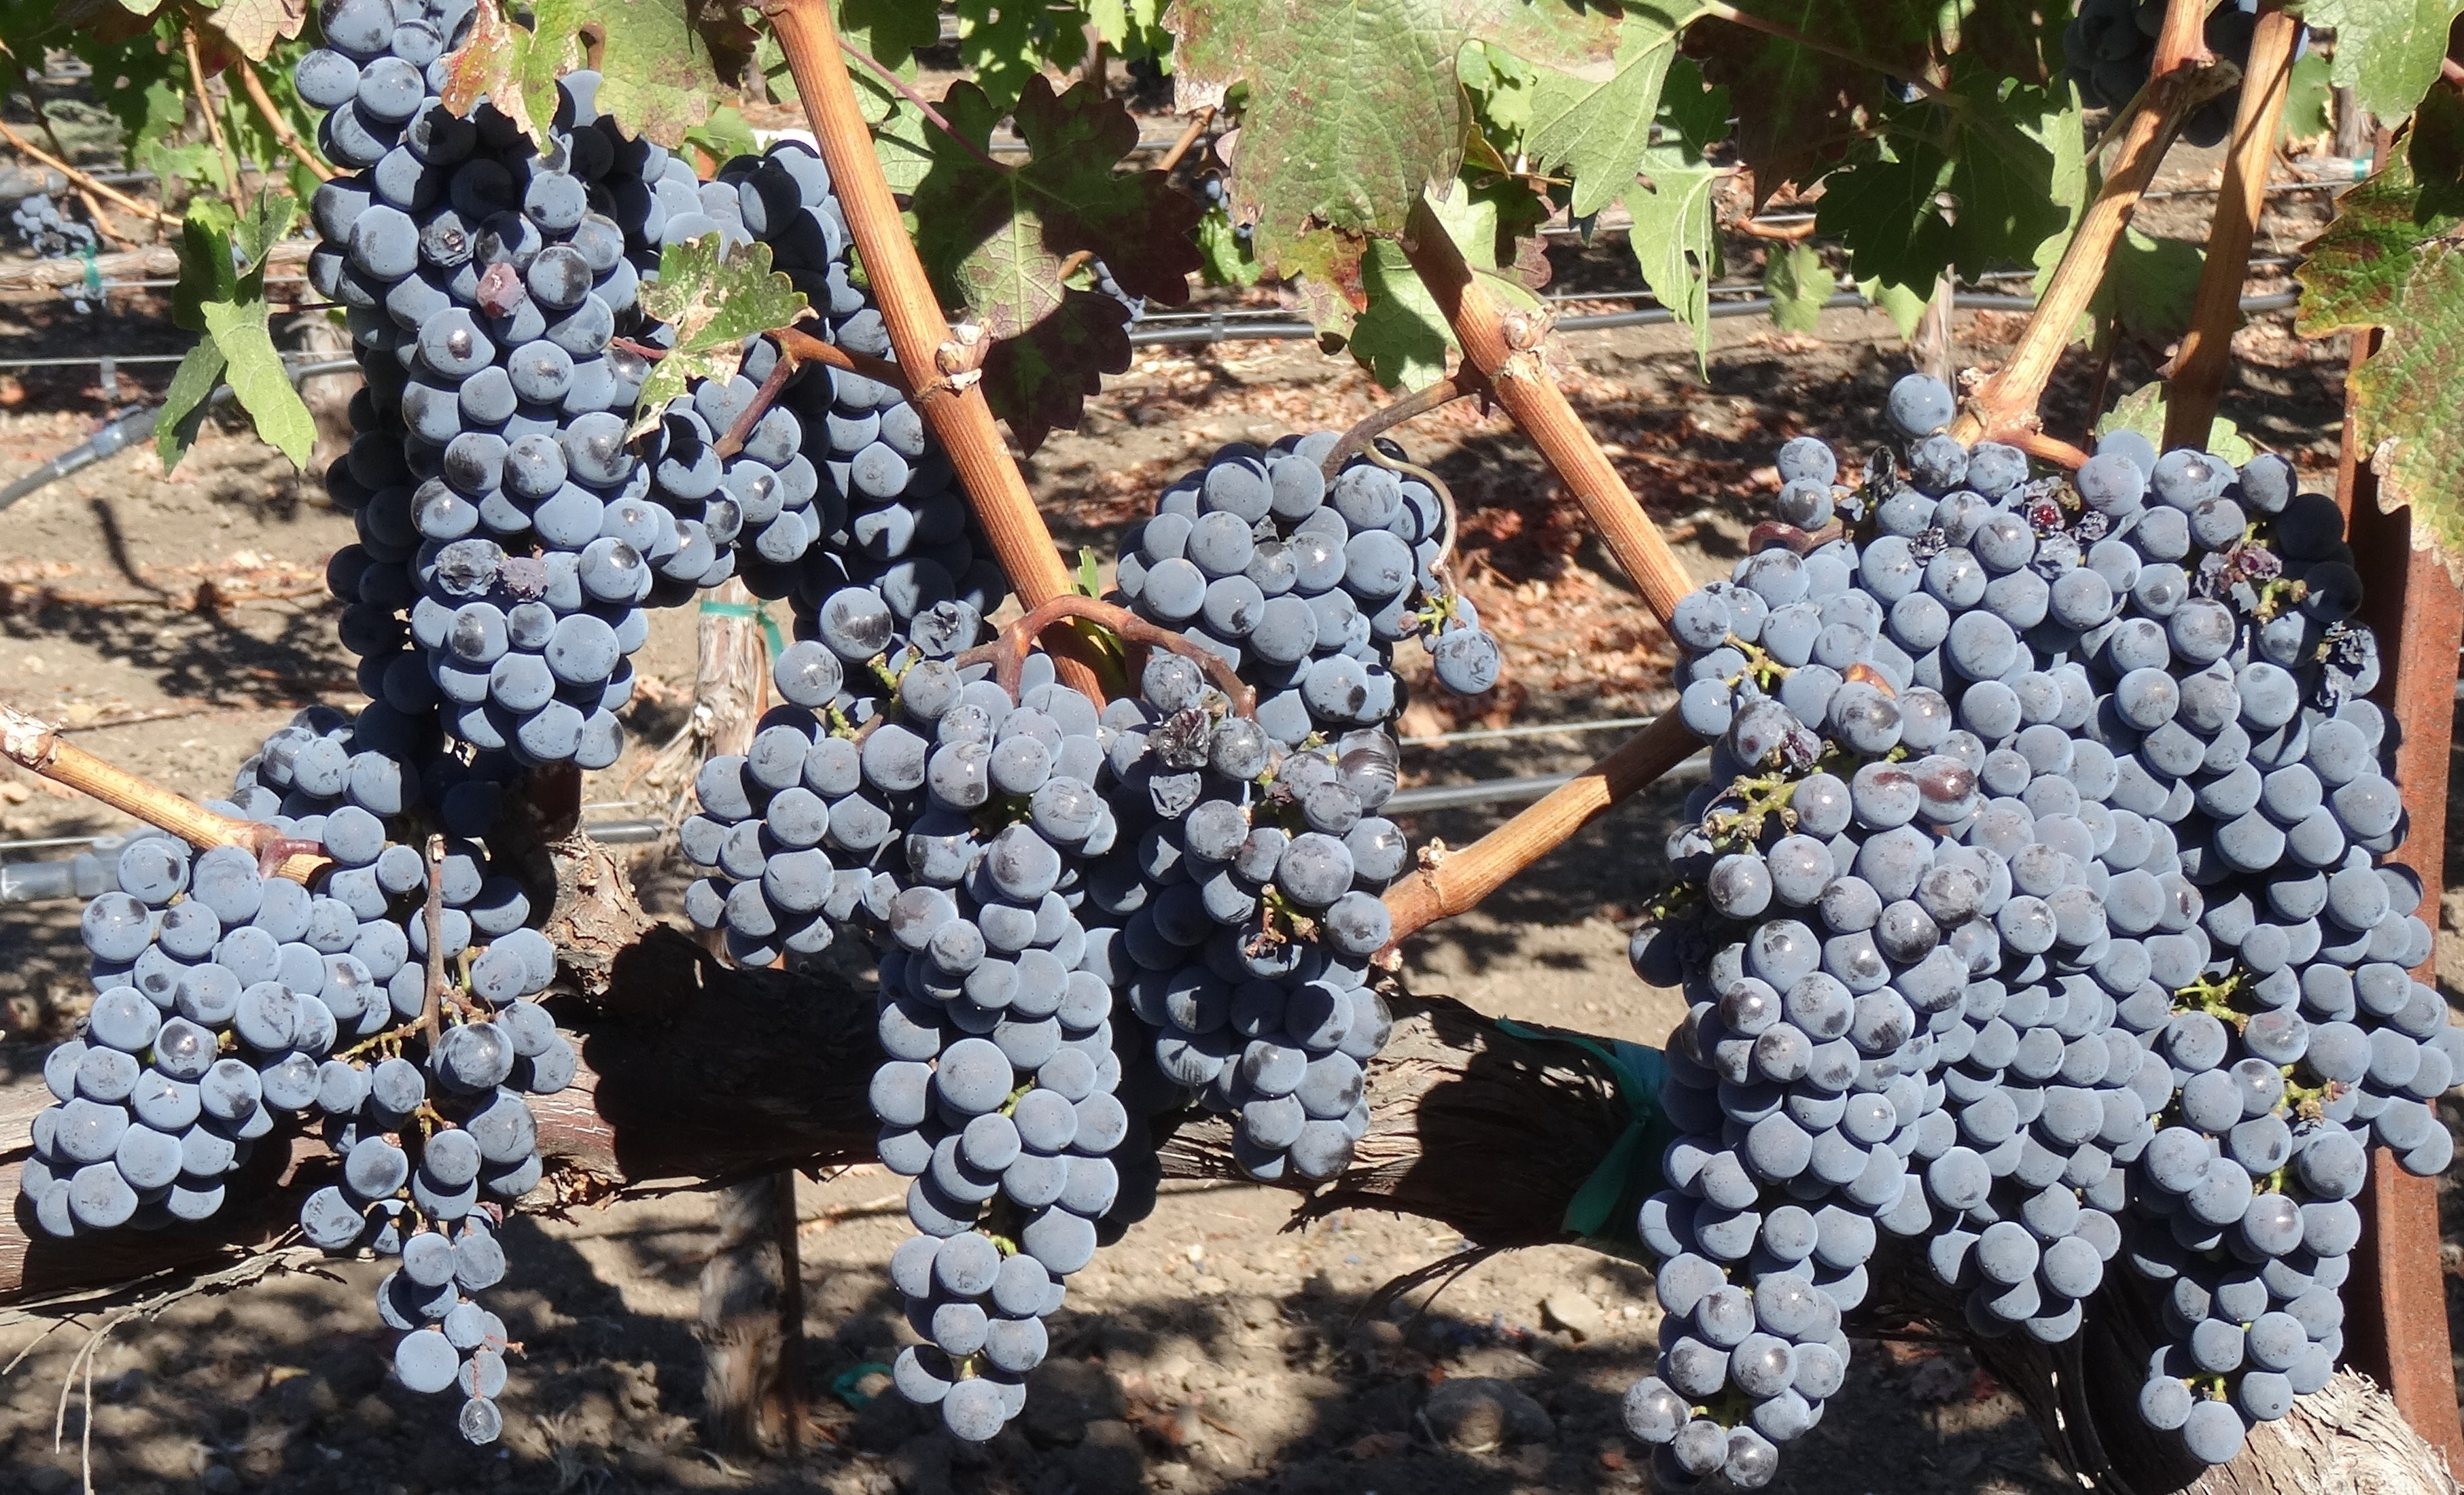 chateau-montelena-grapes.jpg